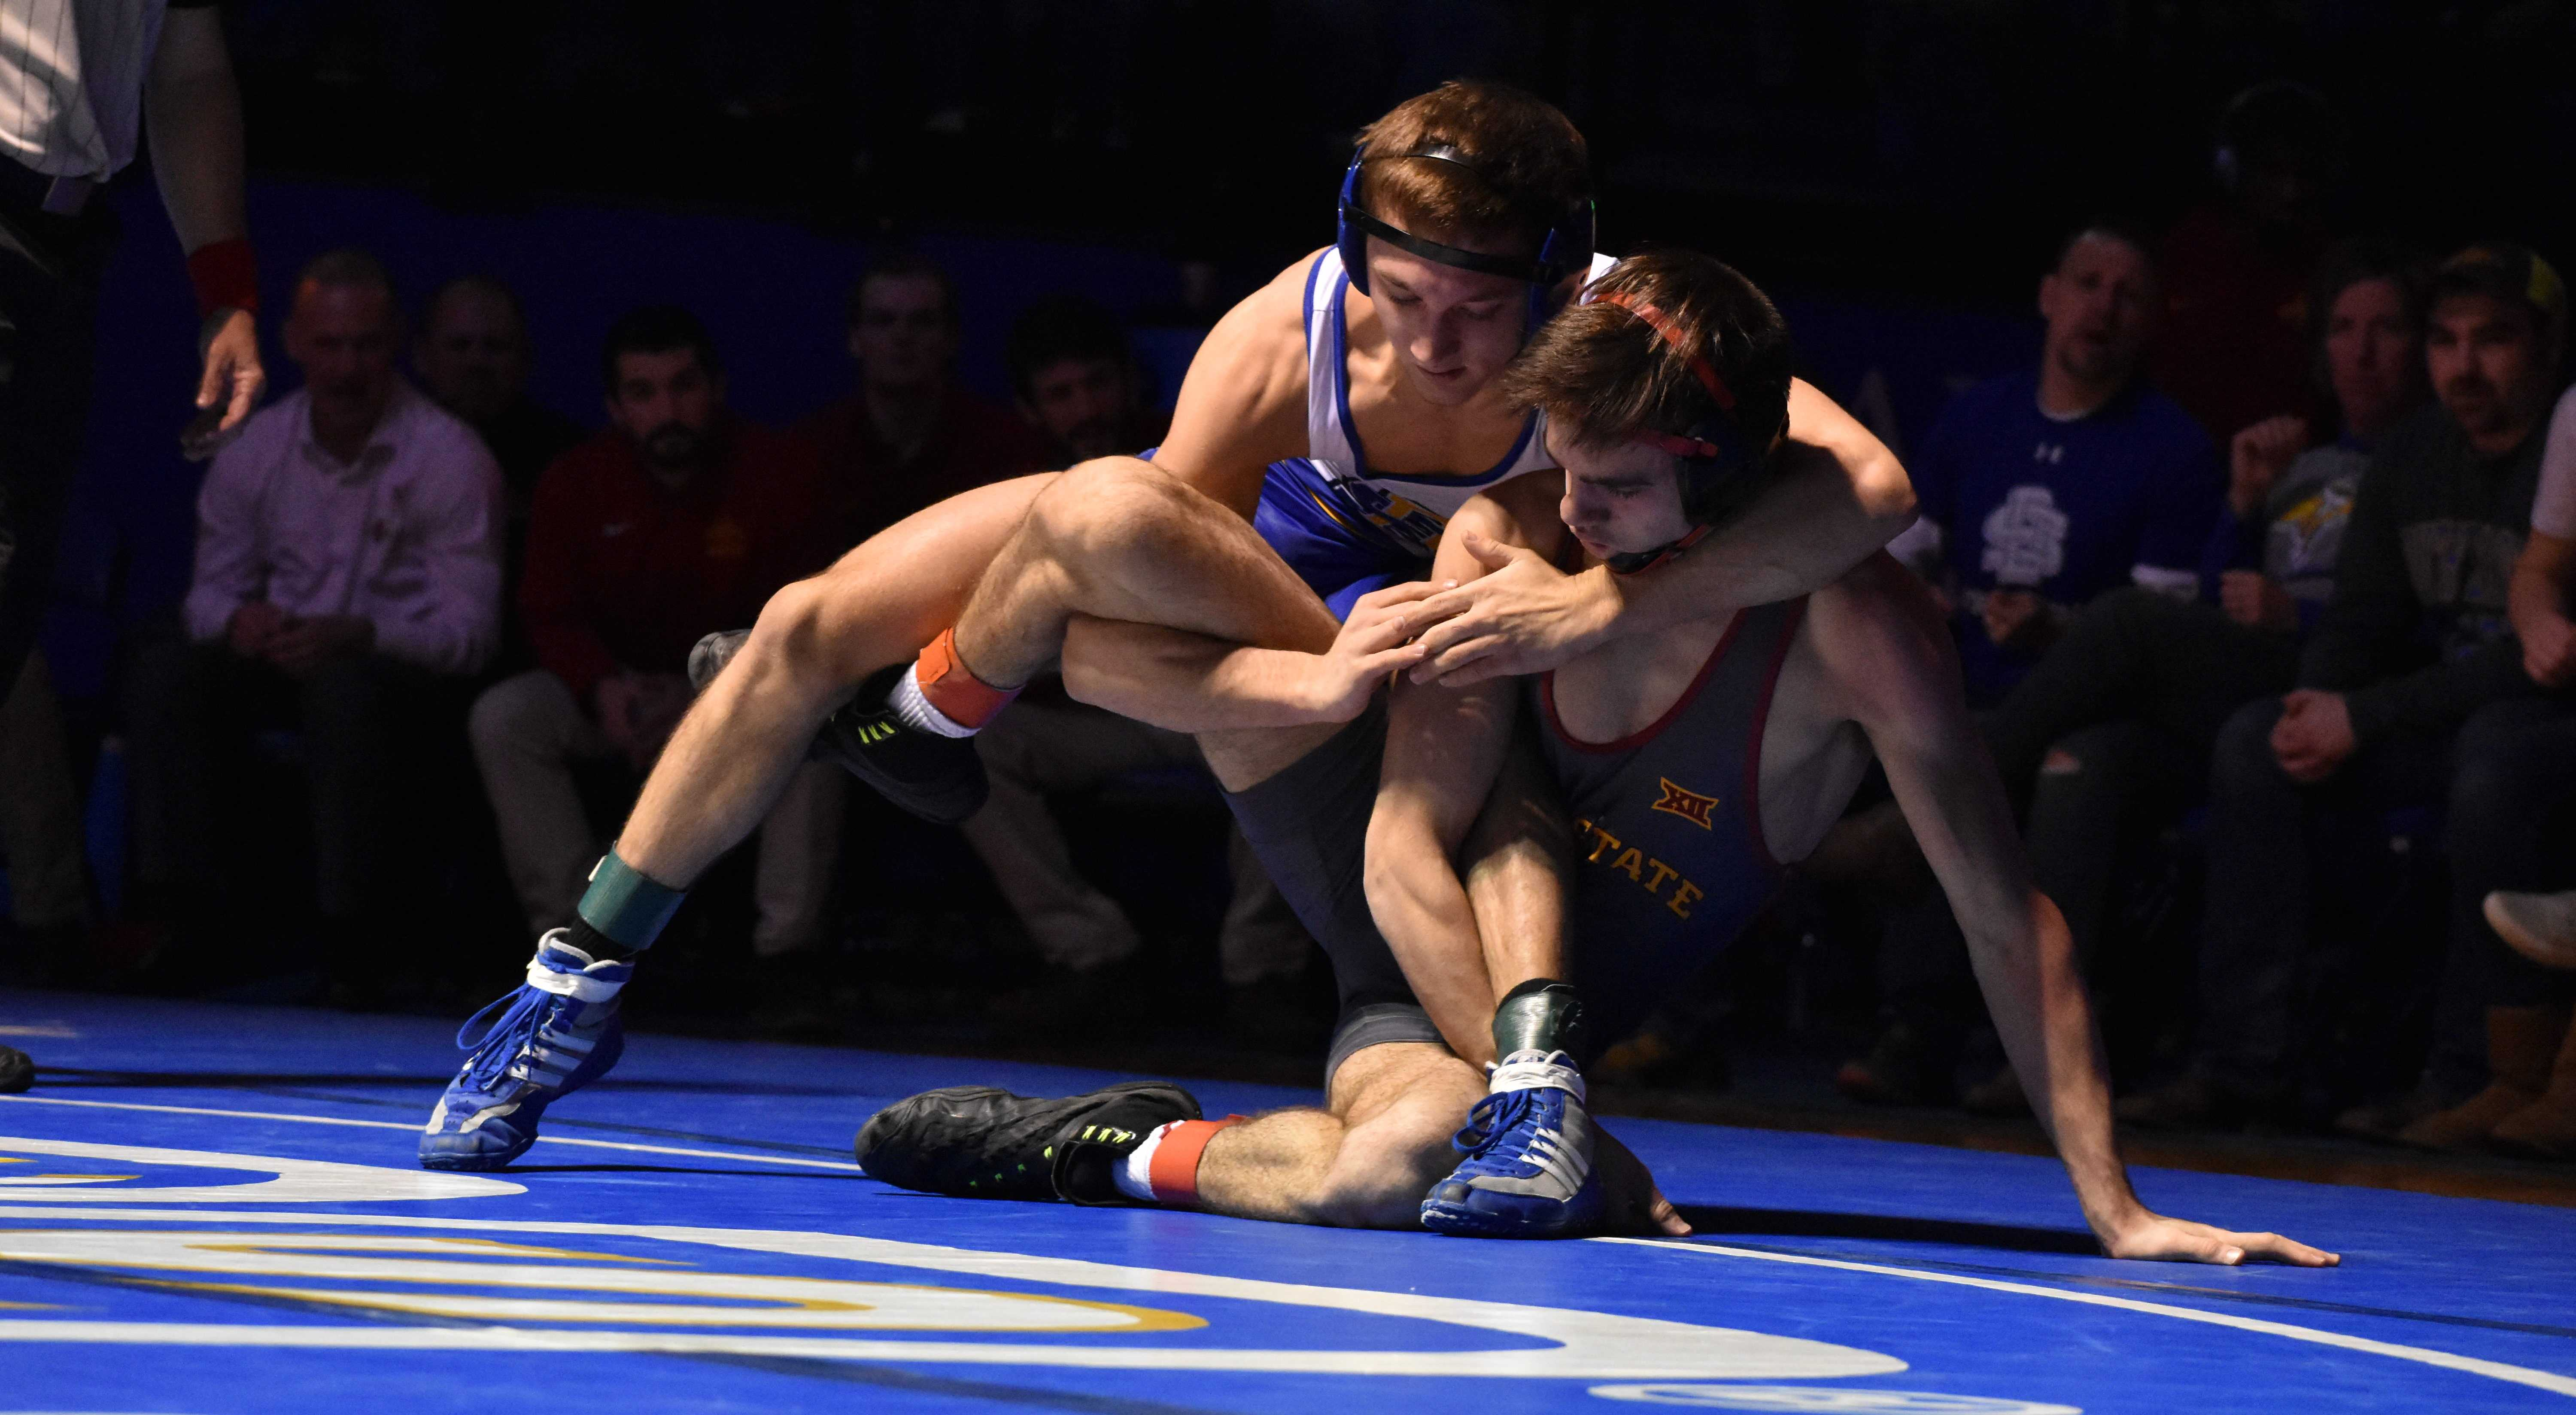 ABBY FULLENKAMP Freshman Connor Brown puts ISU Sinjin Briggs in a cradle during the 125-pound bout Feb. 4. Brown defeated Briggs by pin fall 2:07. The Jacks are 6-0 in the conference and are 11-2 overall. They host NDSU at 7pm Friday, Feb. 16 in Frost Arena.